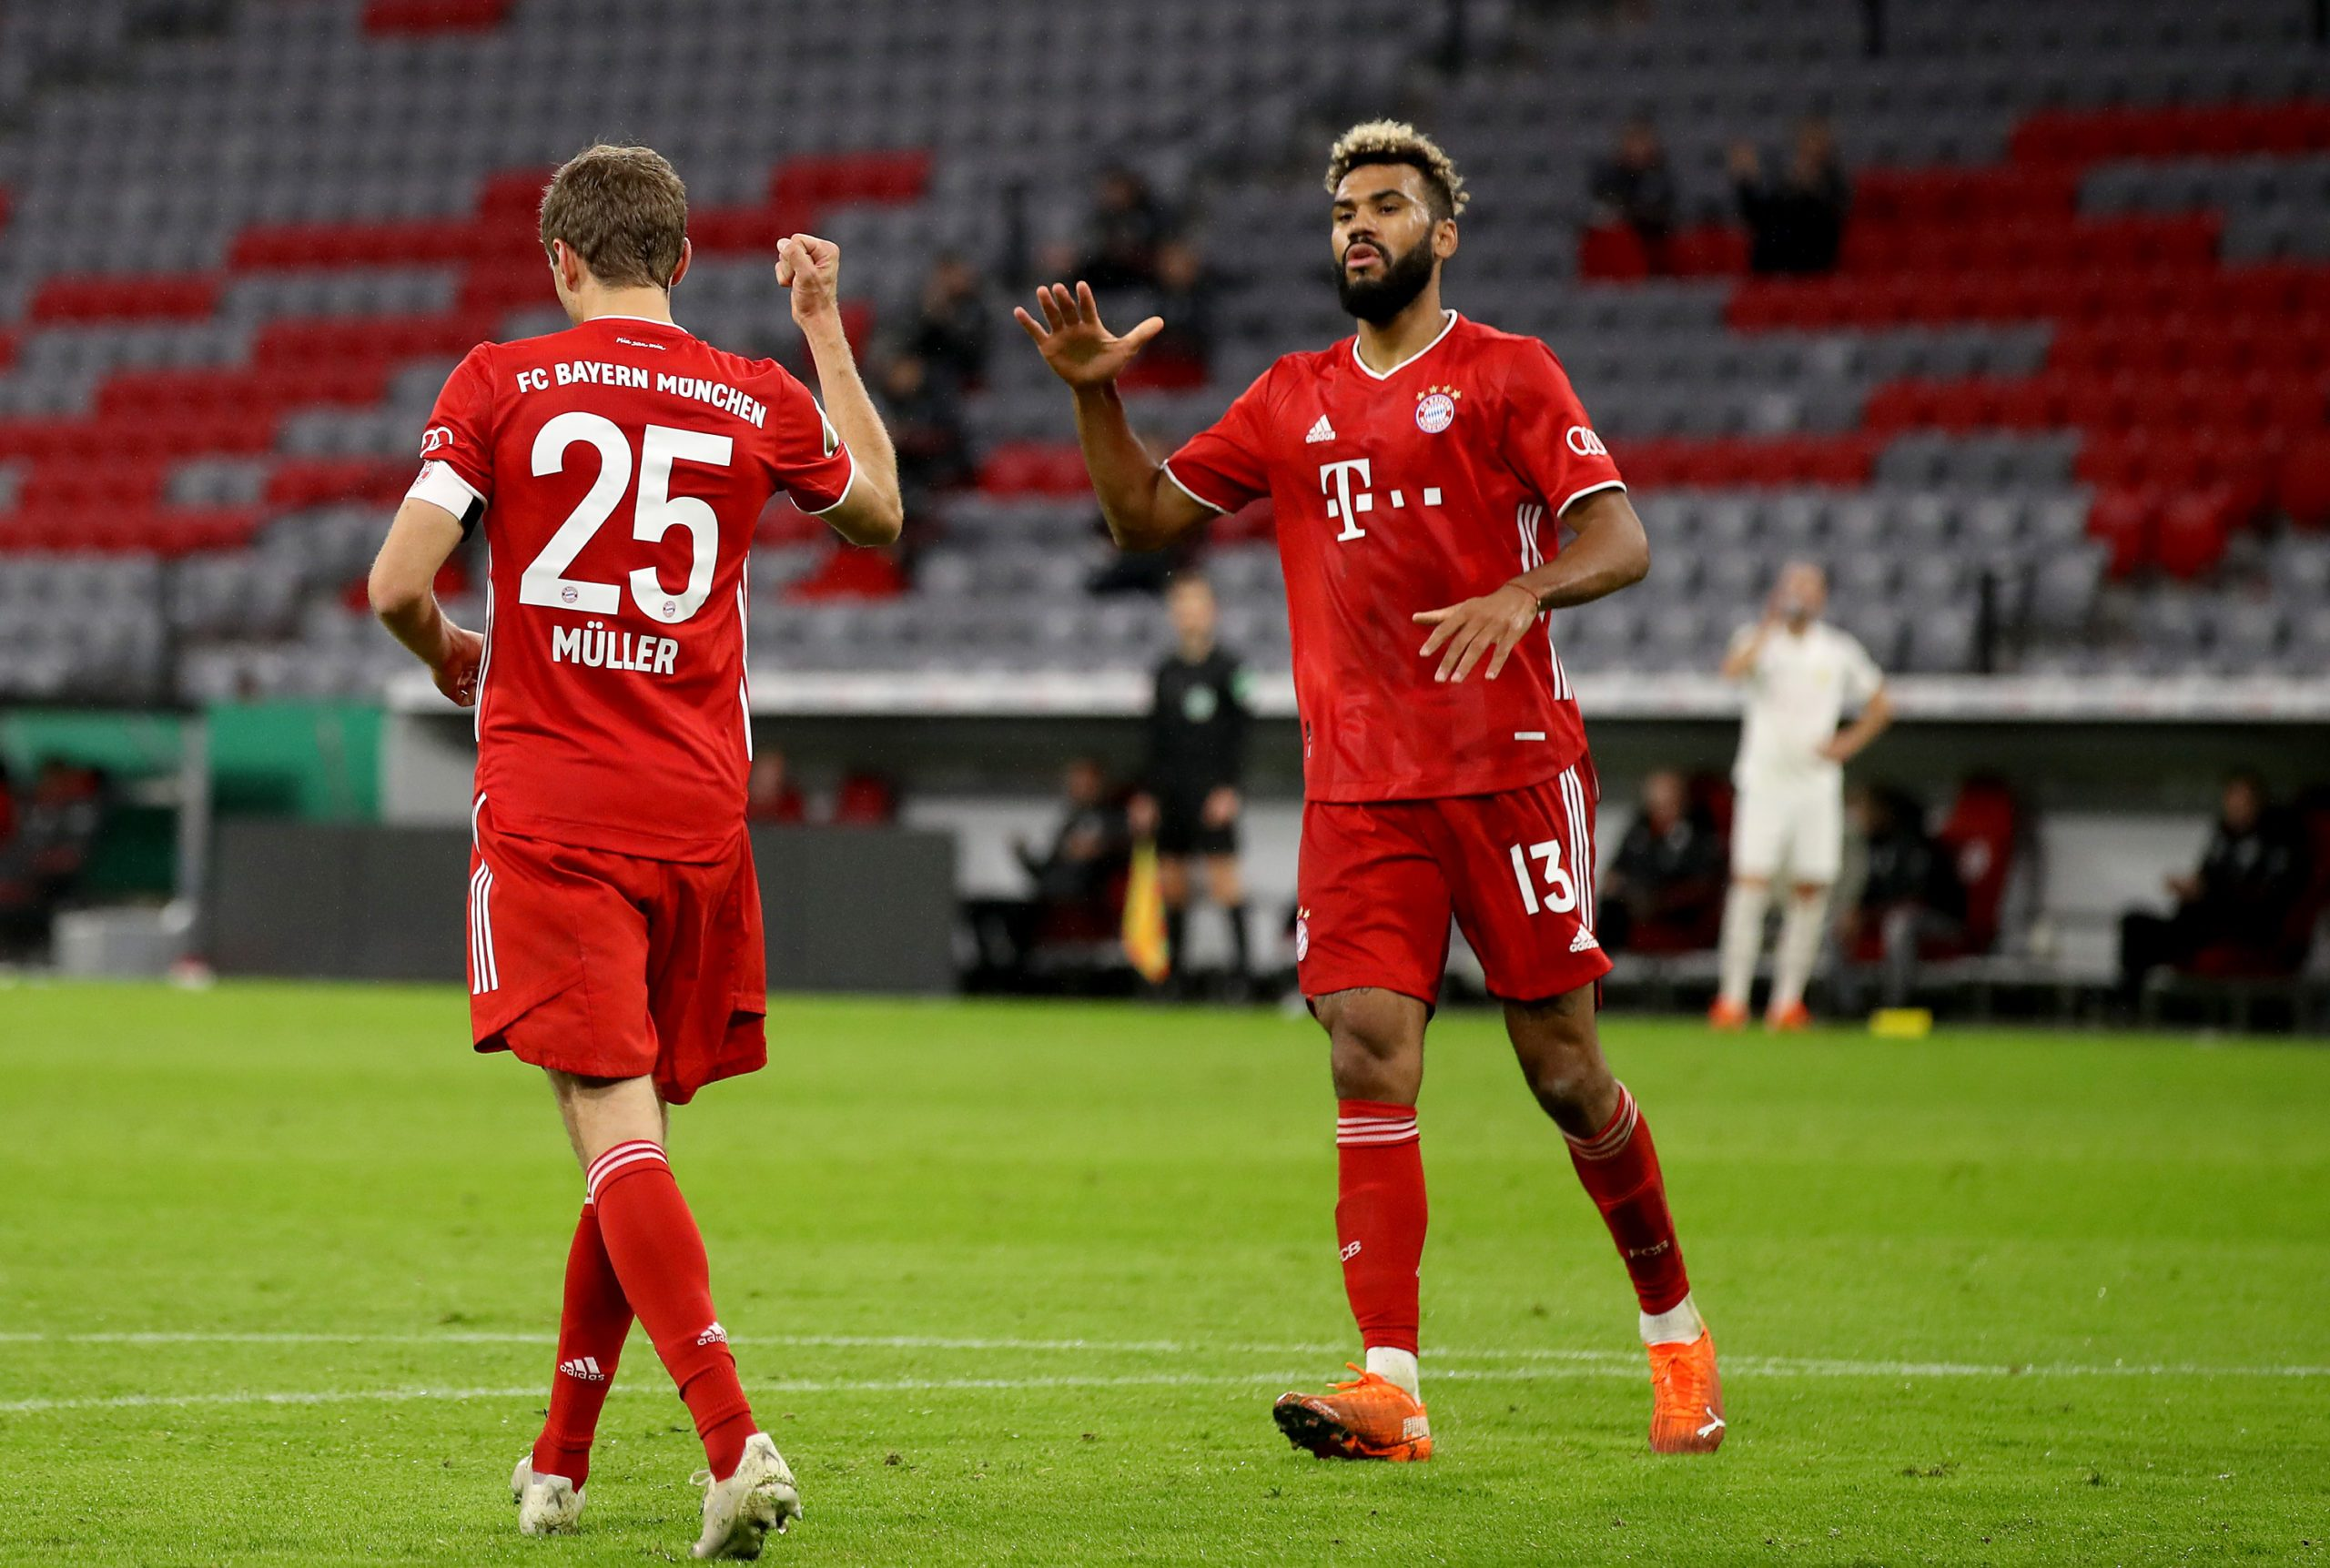 Bundesliga Thomas M ller And Eric Maxim Choupo Moting Send Bayern Munich Into DFB Cup Second Round With Win Over D ren